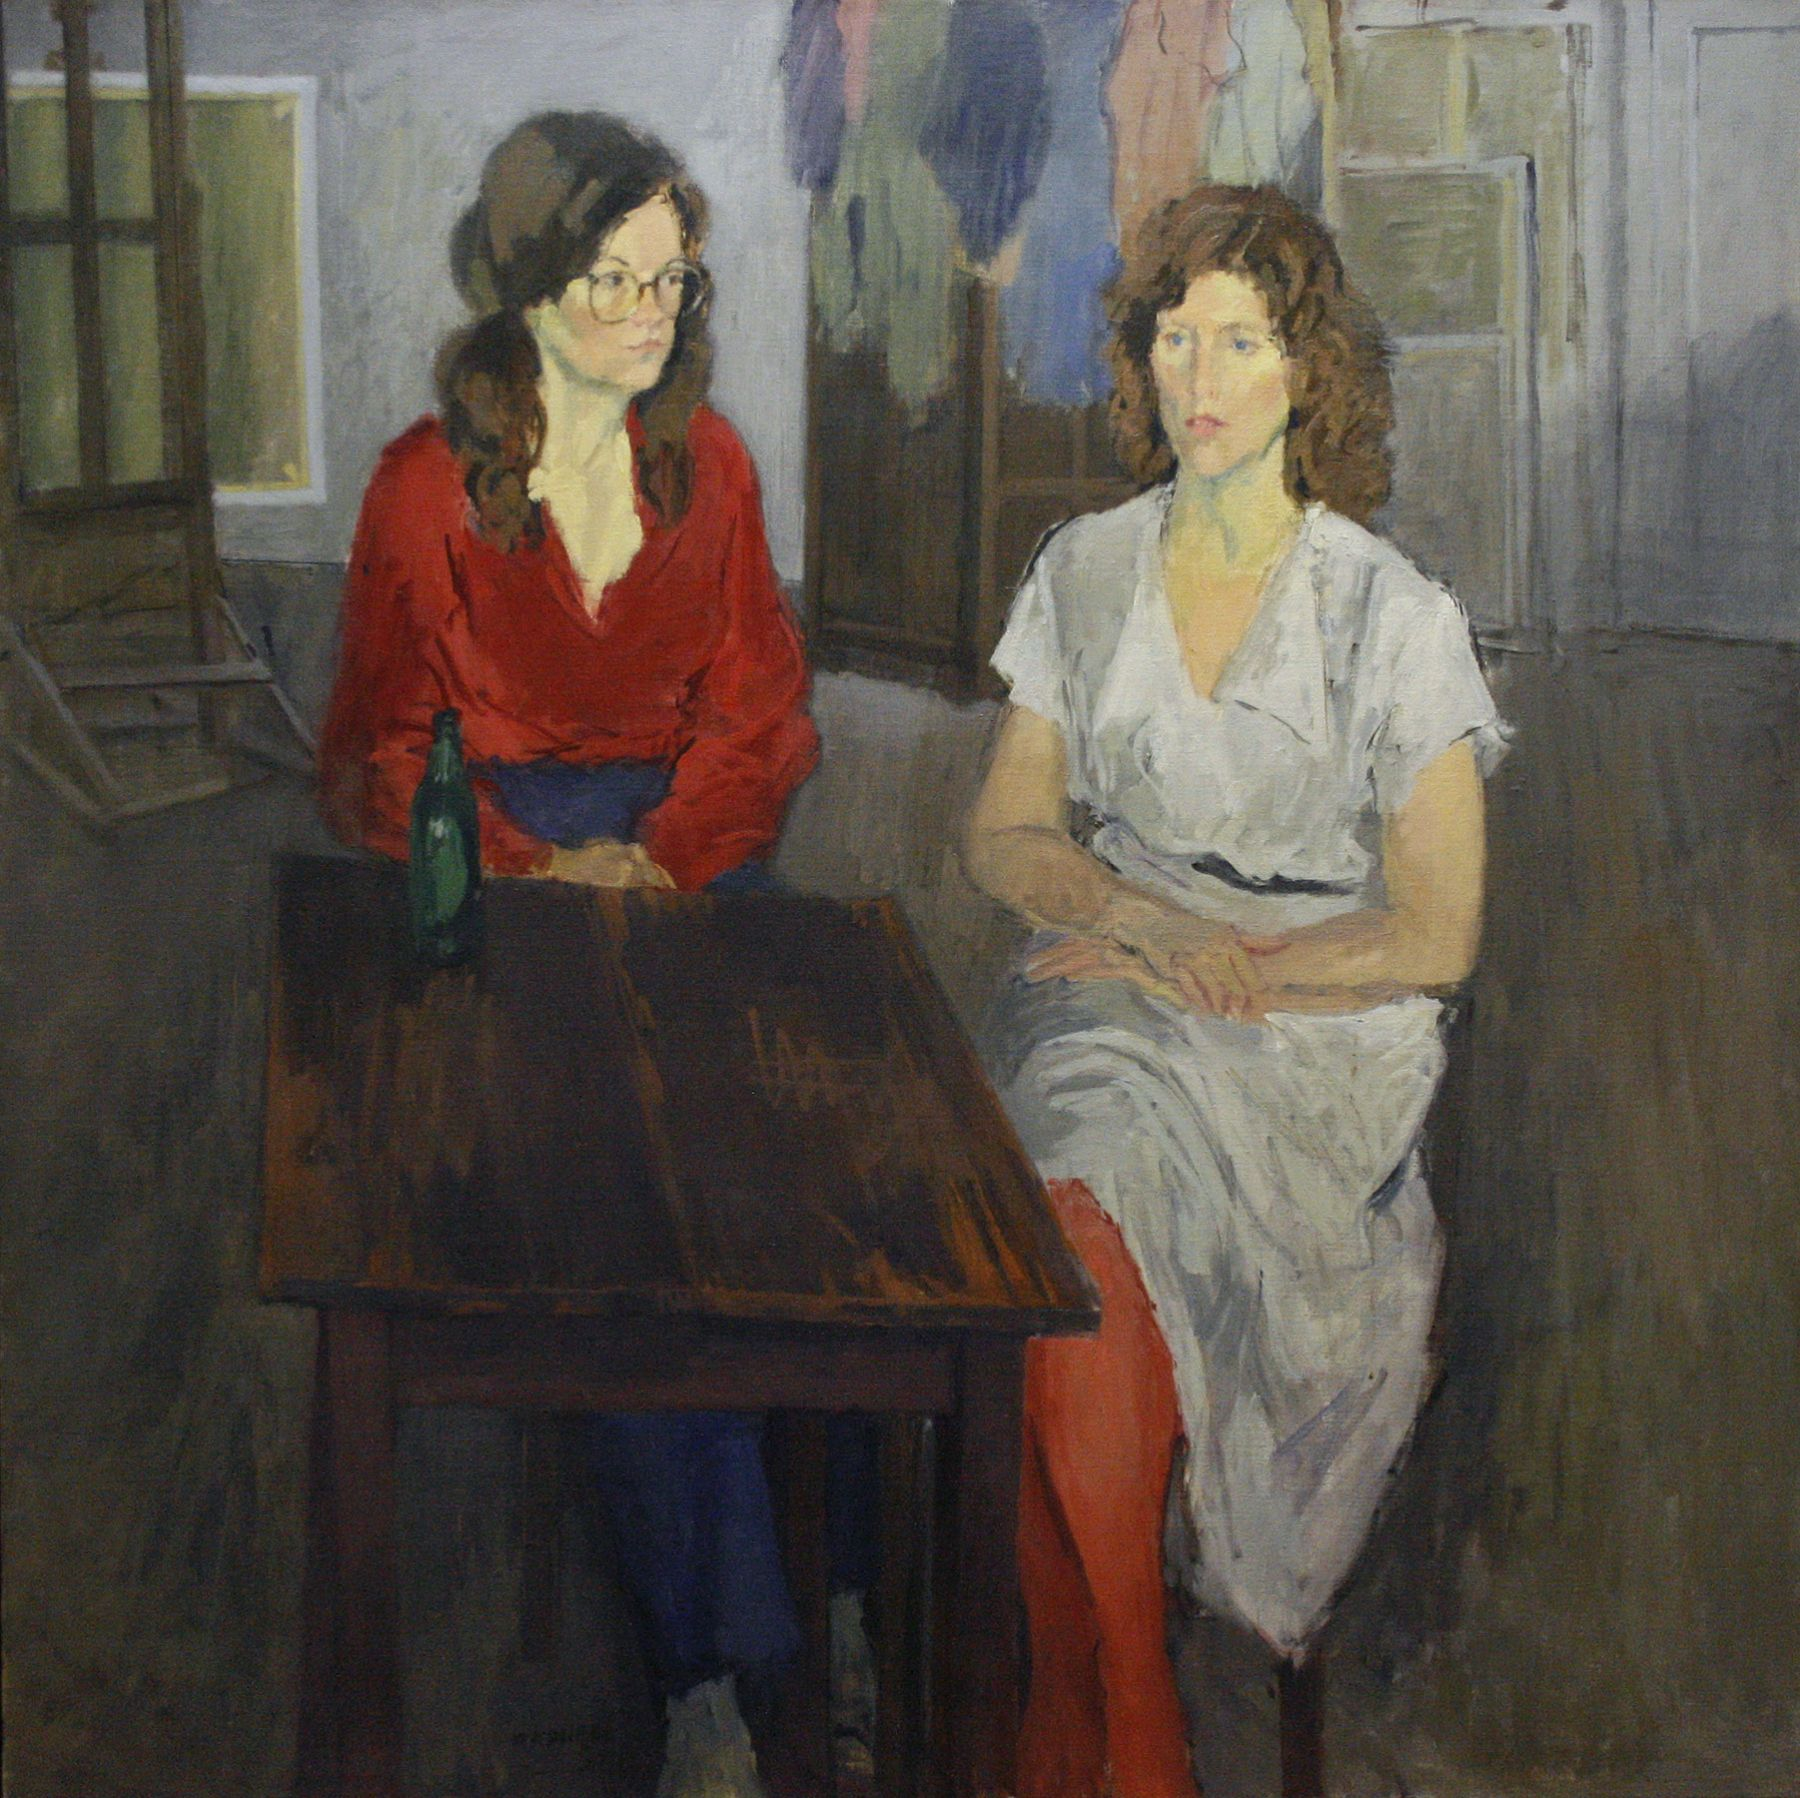 Raphael Soyer, Donna Dennis and Rosemary Mayer, 1981, oil on canvas, 48 x 48 inches